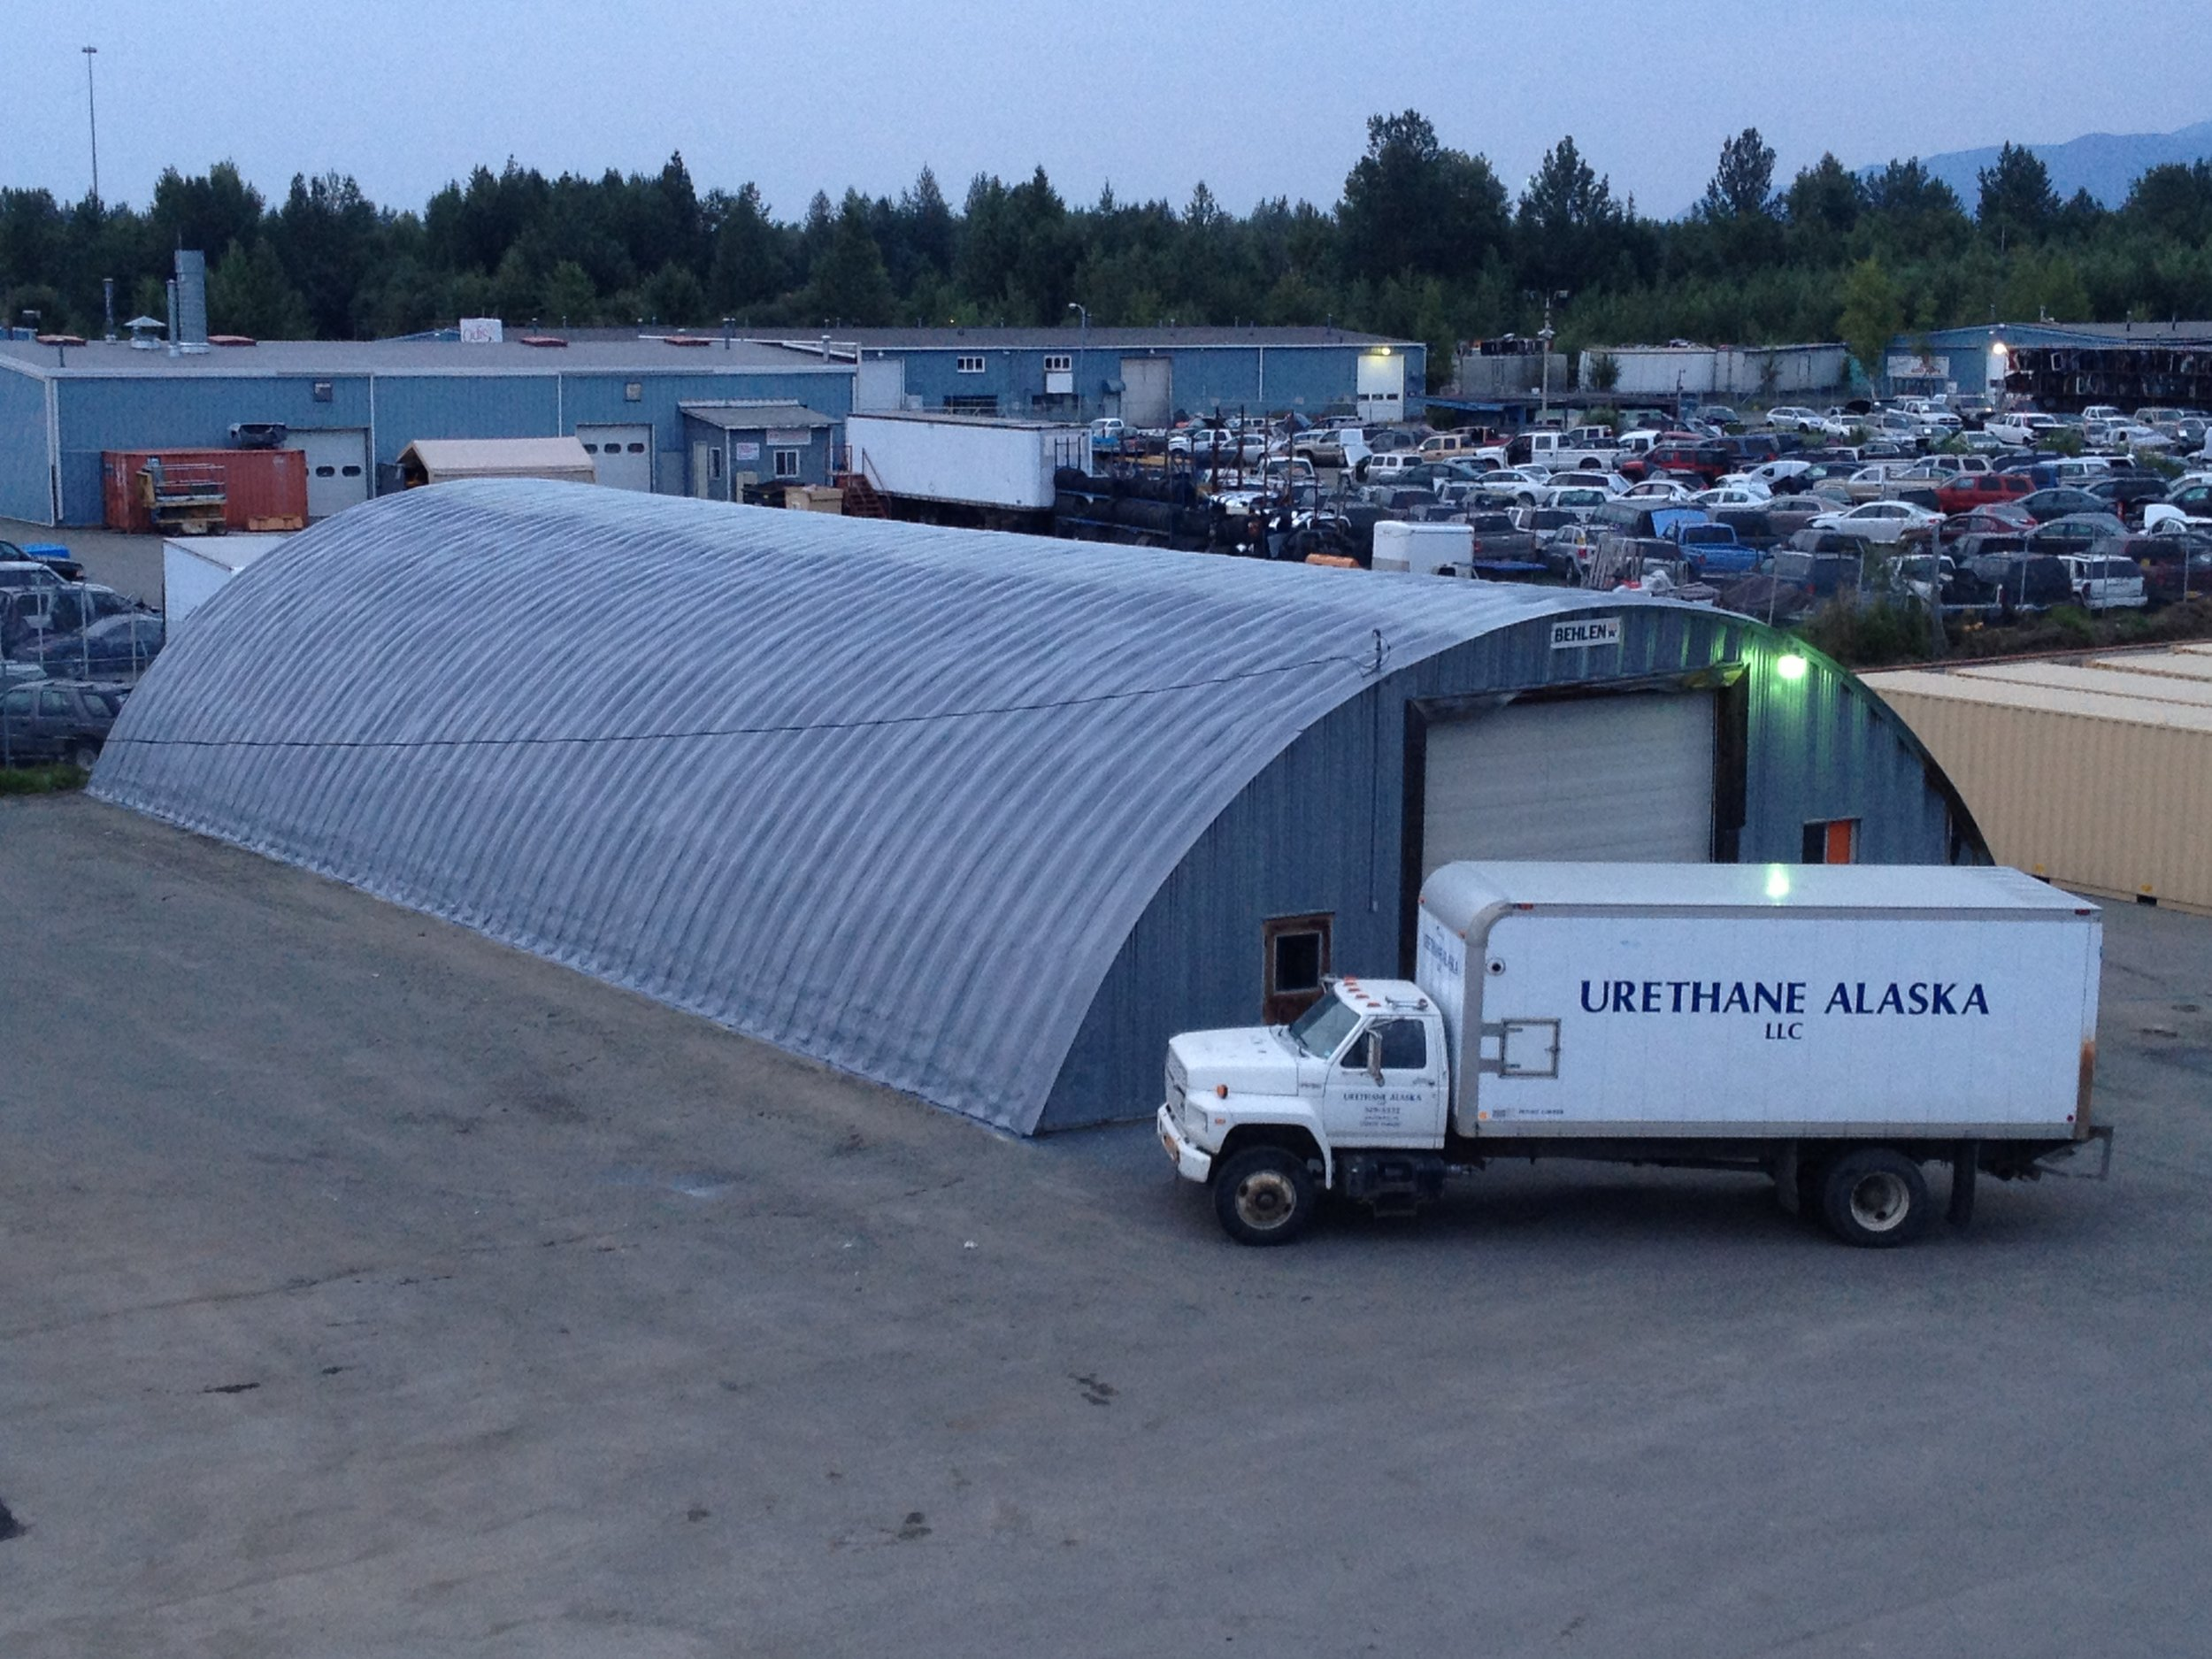 Quonset hut with urethane and polyshield coating.